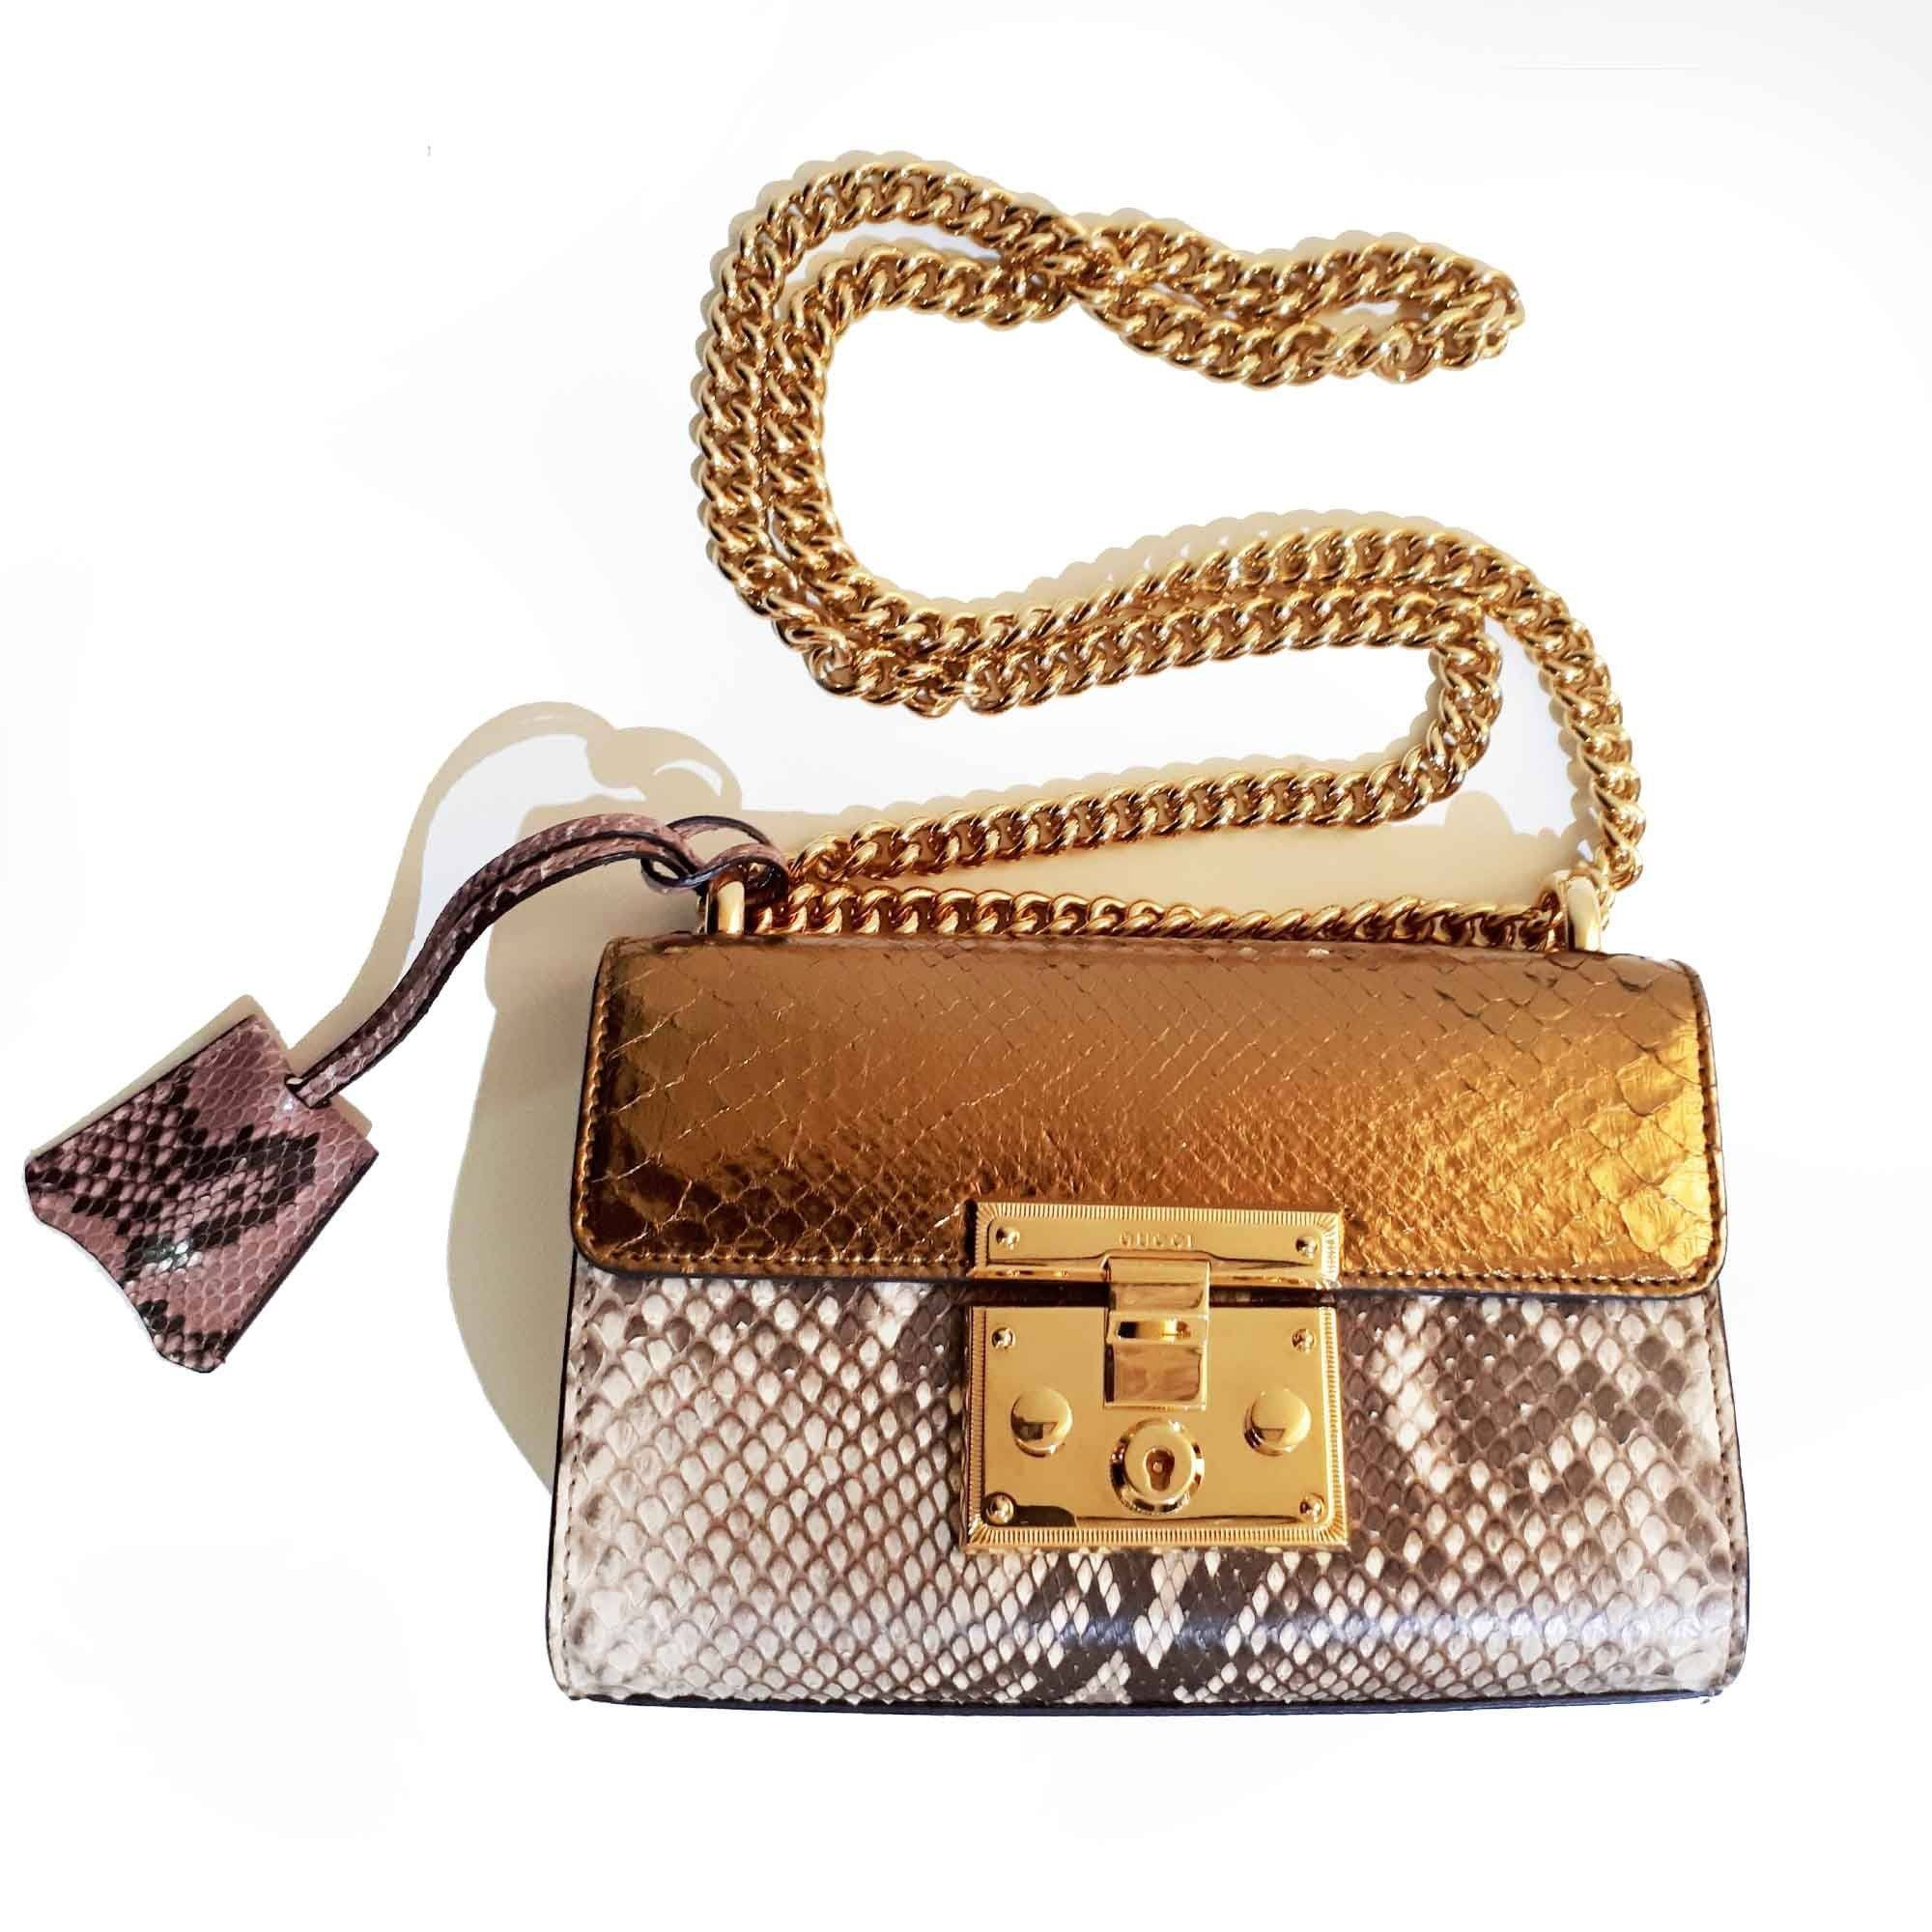 Gucci Small Padlock Python Shoulder Bag